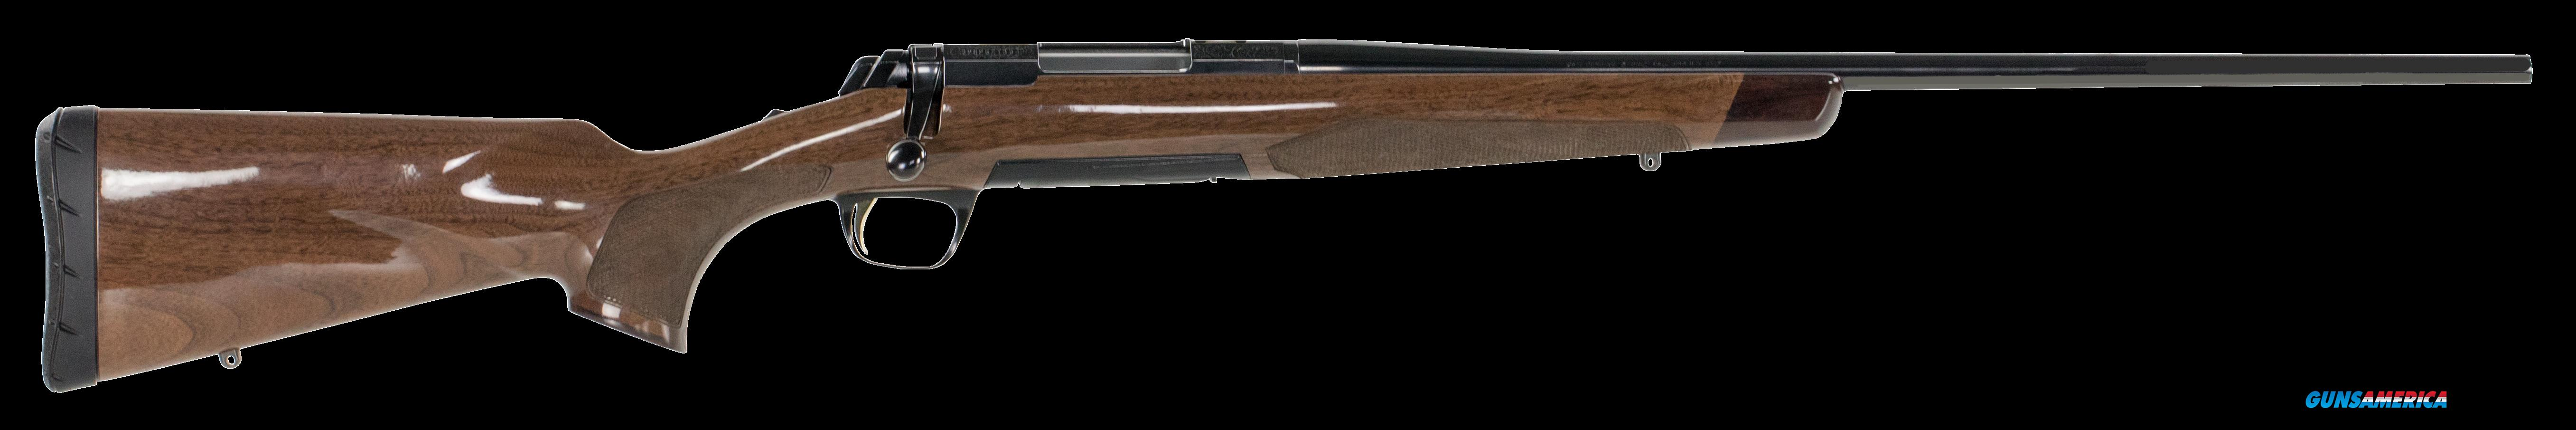 "Browning 035200218 X-Bolt Medallion Bolt 308 Winchester/7.62 NATO 22"" 4+1 Walnut Stock Blued  Guns > Rifles > Browning Rifles > Bolt Action > Hunting > Blue"